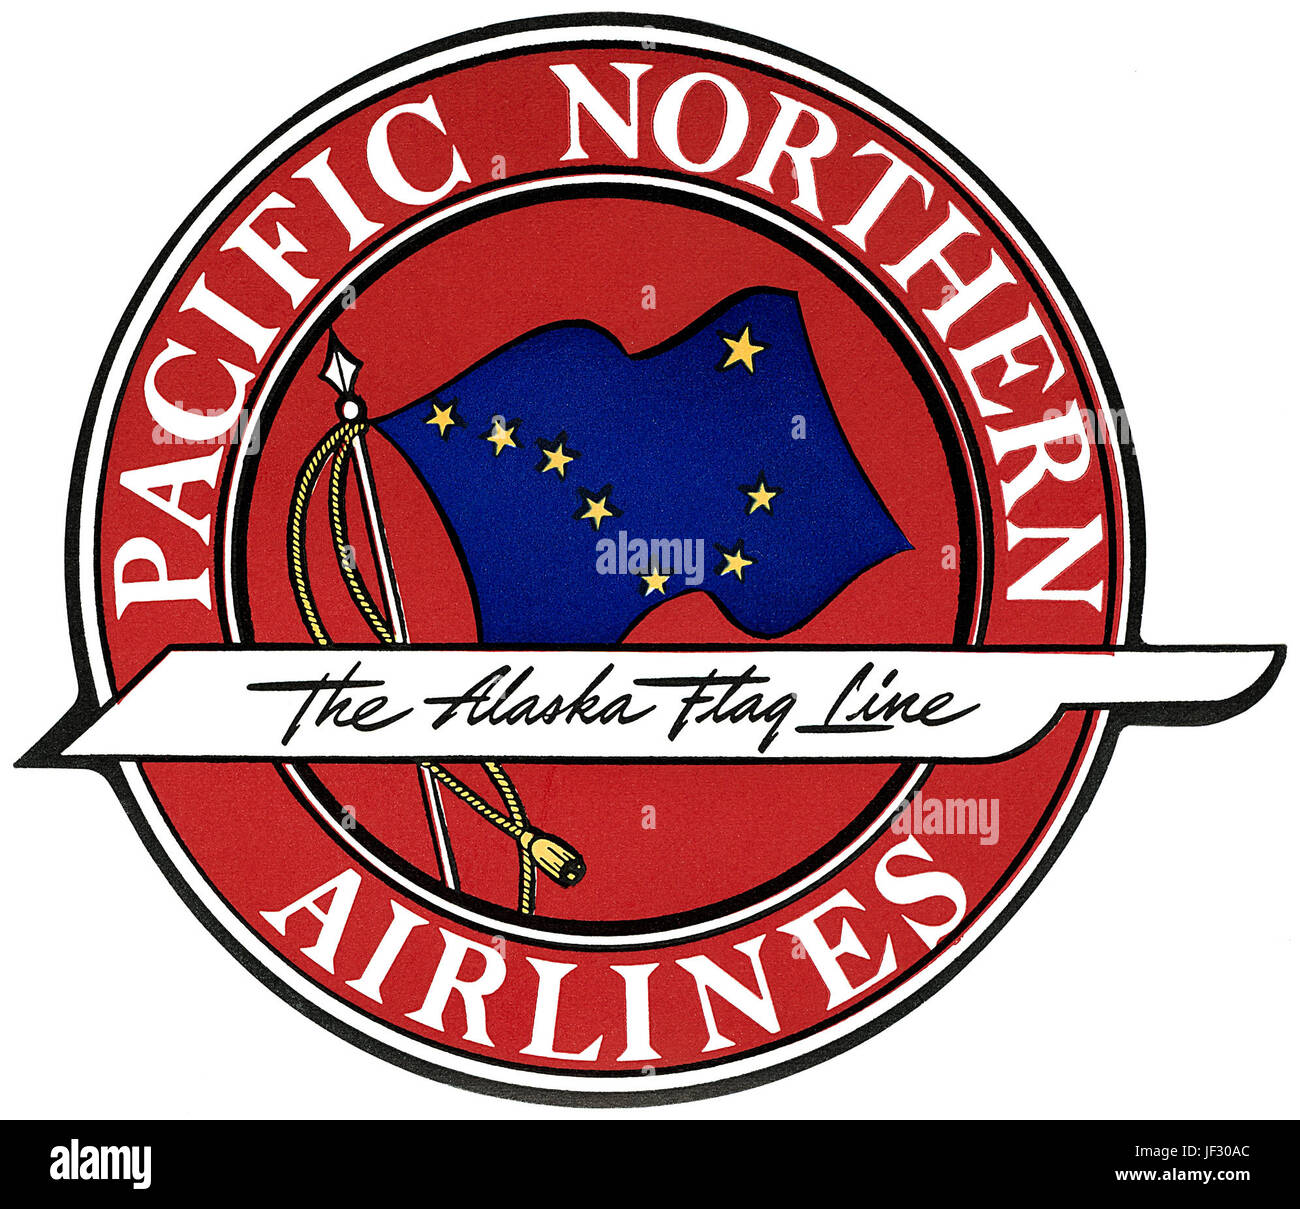 Vintage Pacific Northern Airlines luggage label - 'The Alaska Flag Line.' - Stock Image